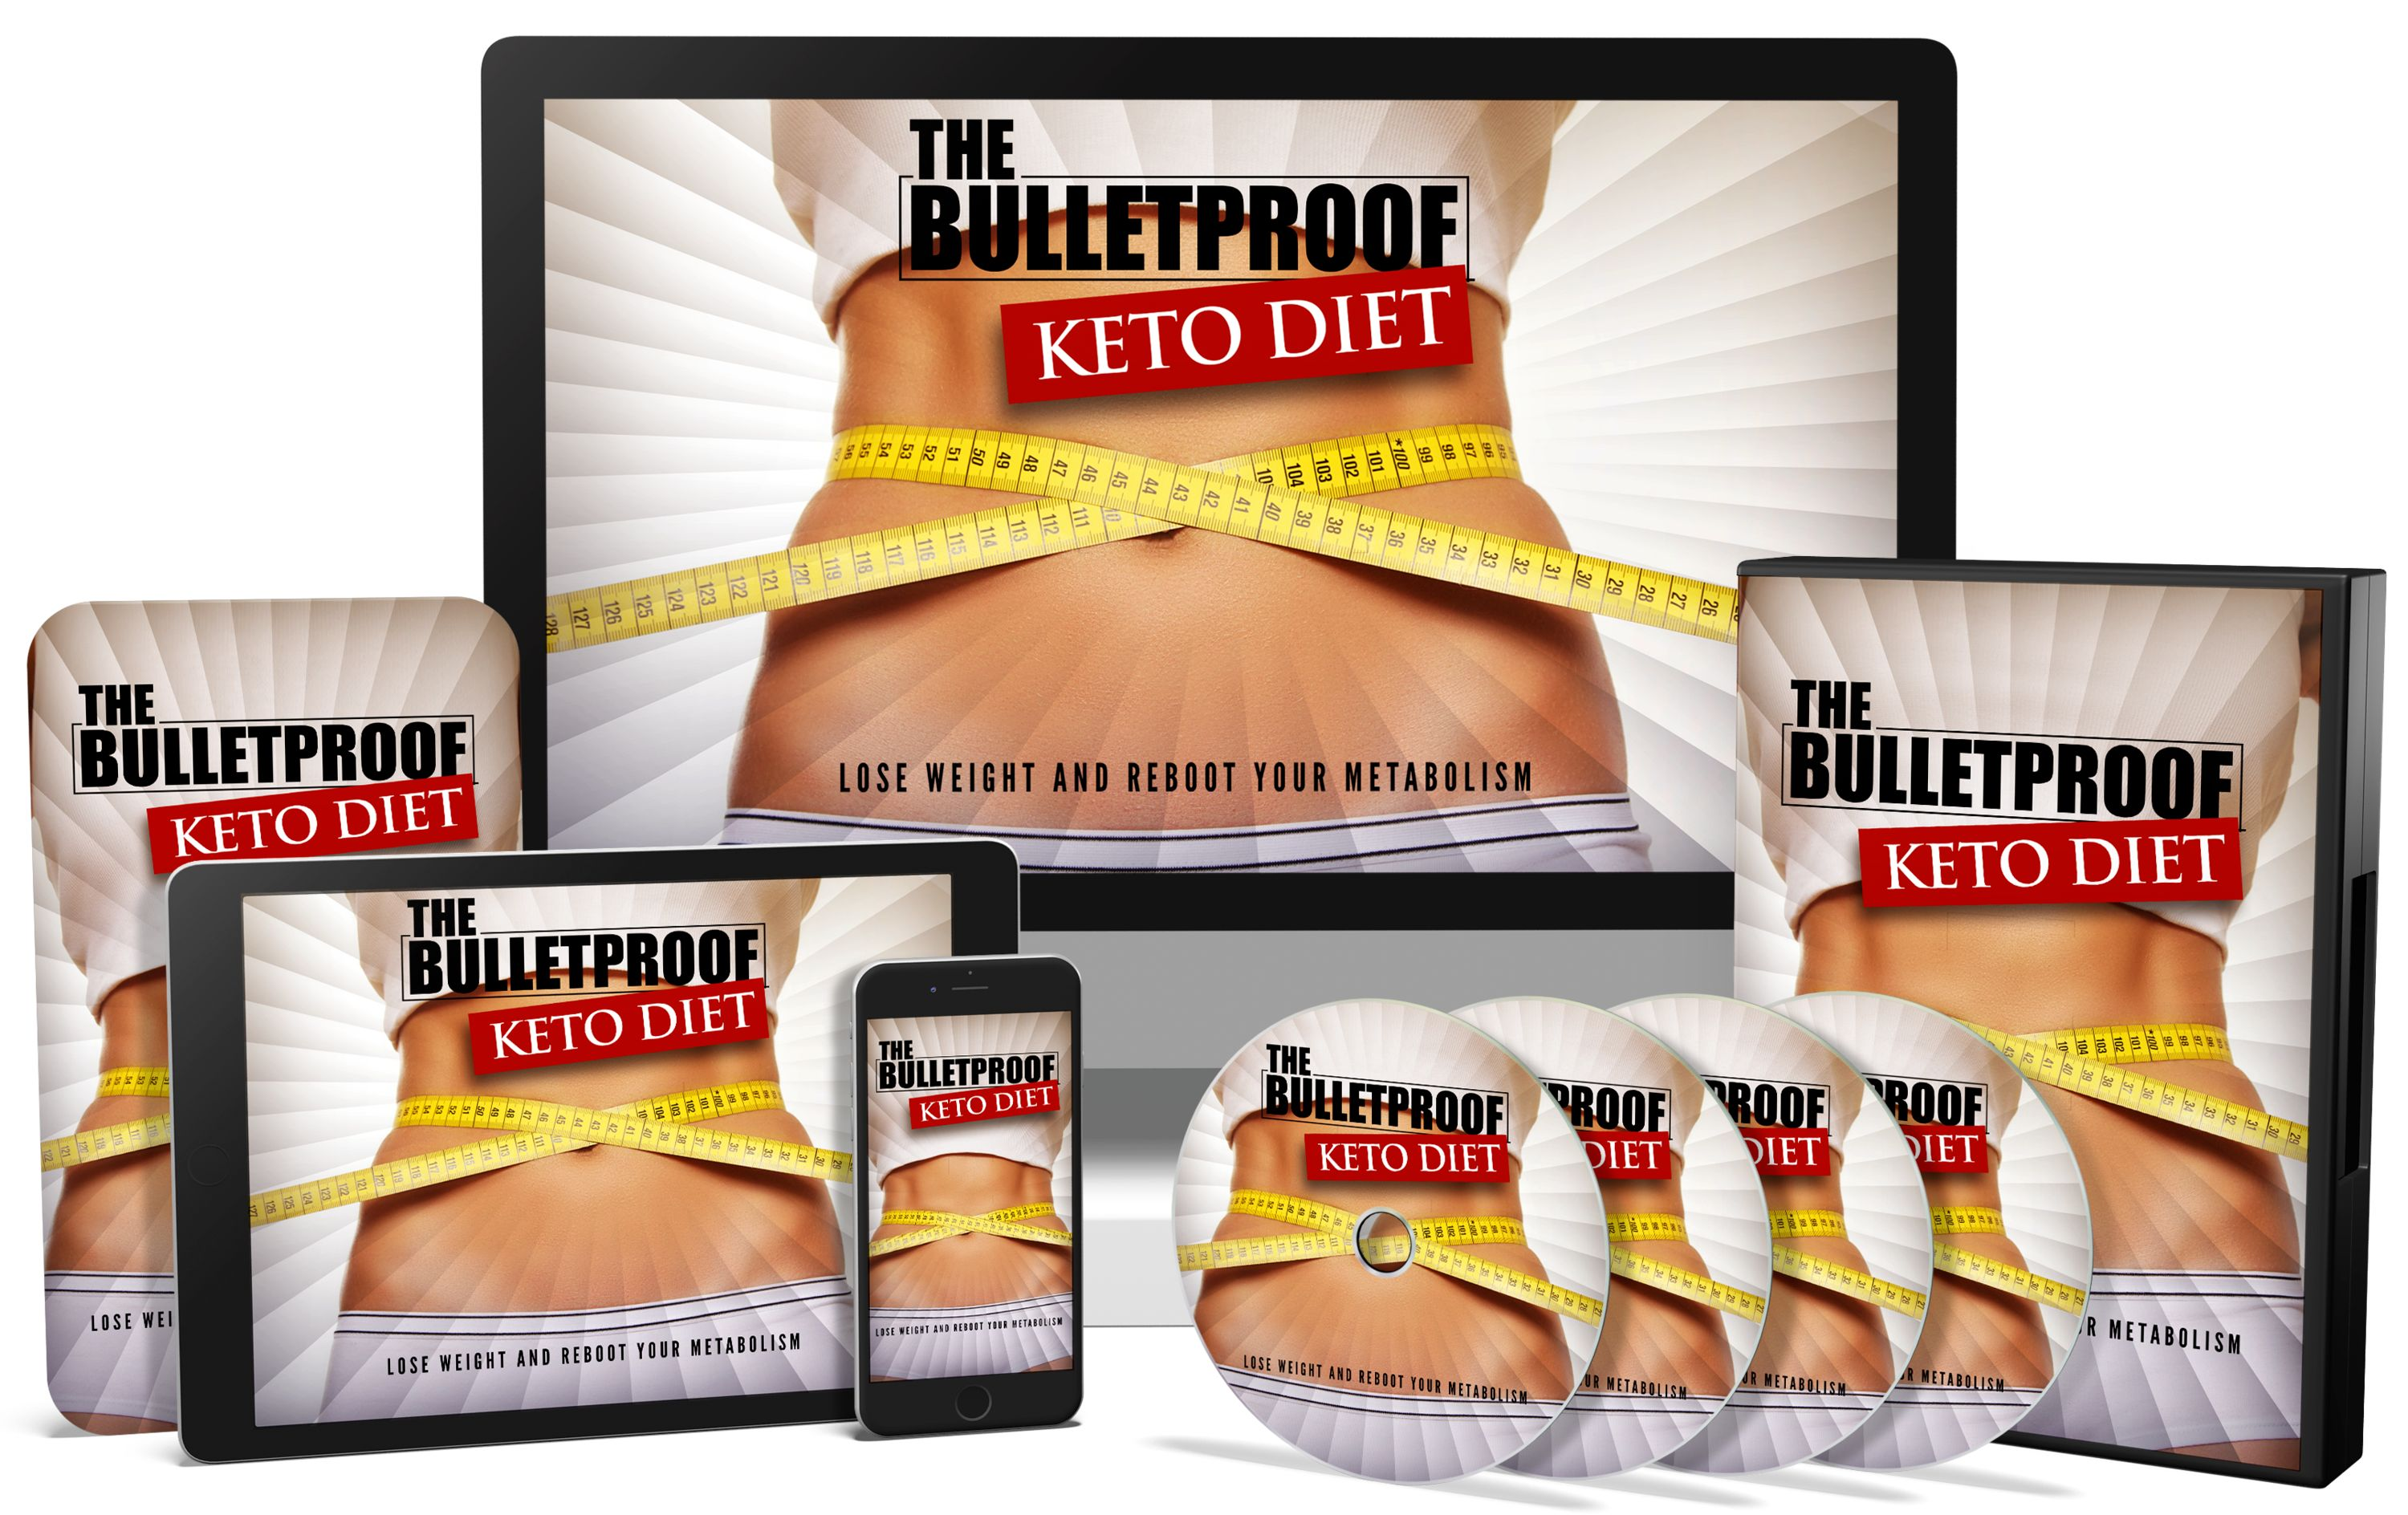 The-Bullerproof-Keto-Diet-Review